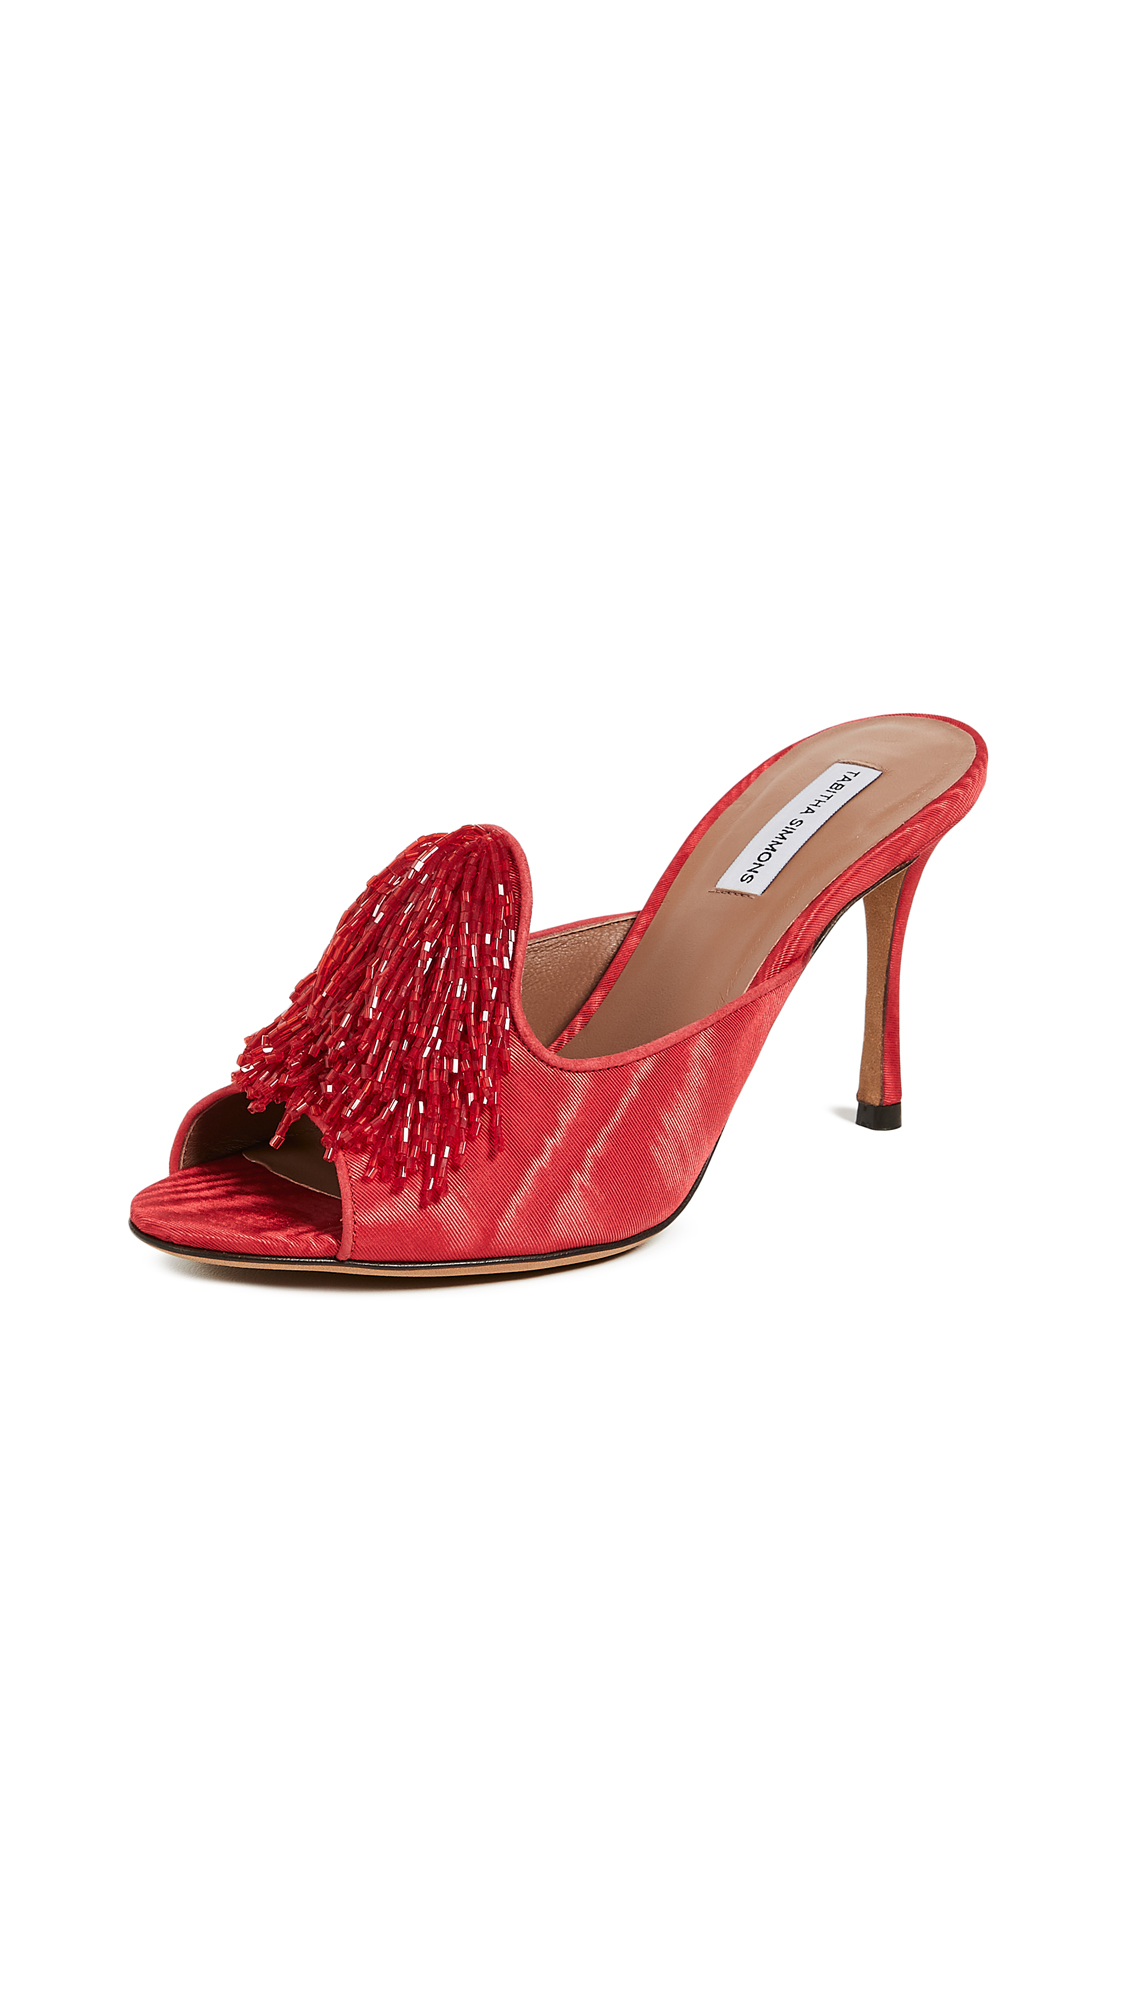 Tabitha Simmons Pammy Beaded Mules - Red